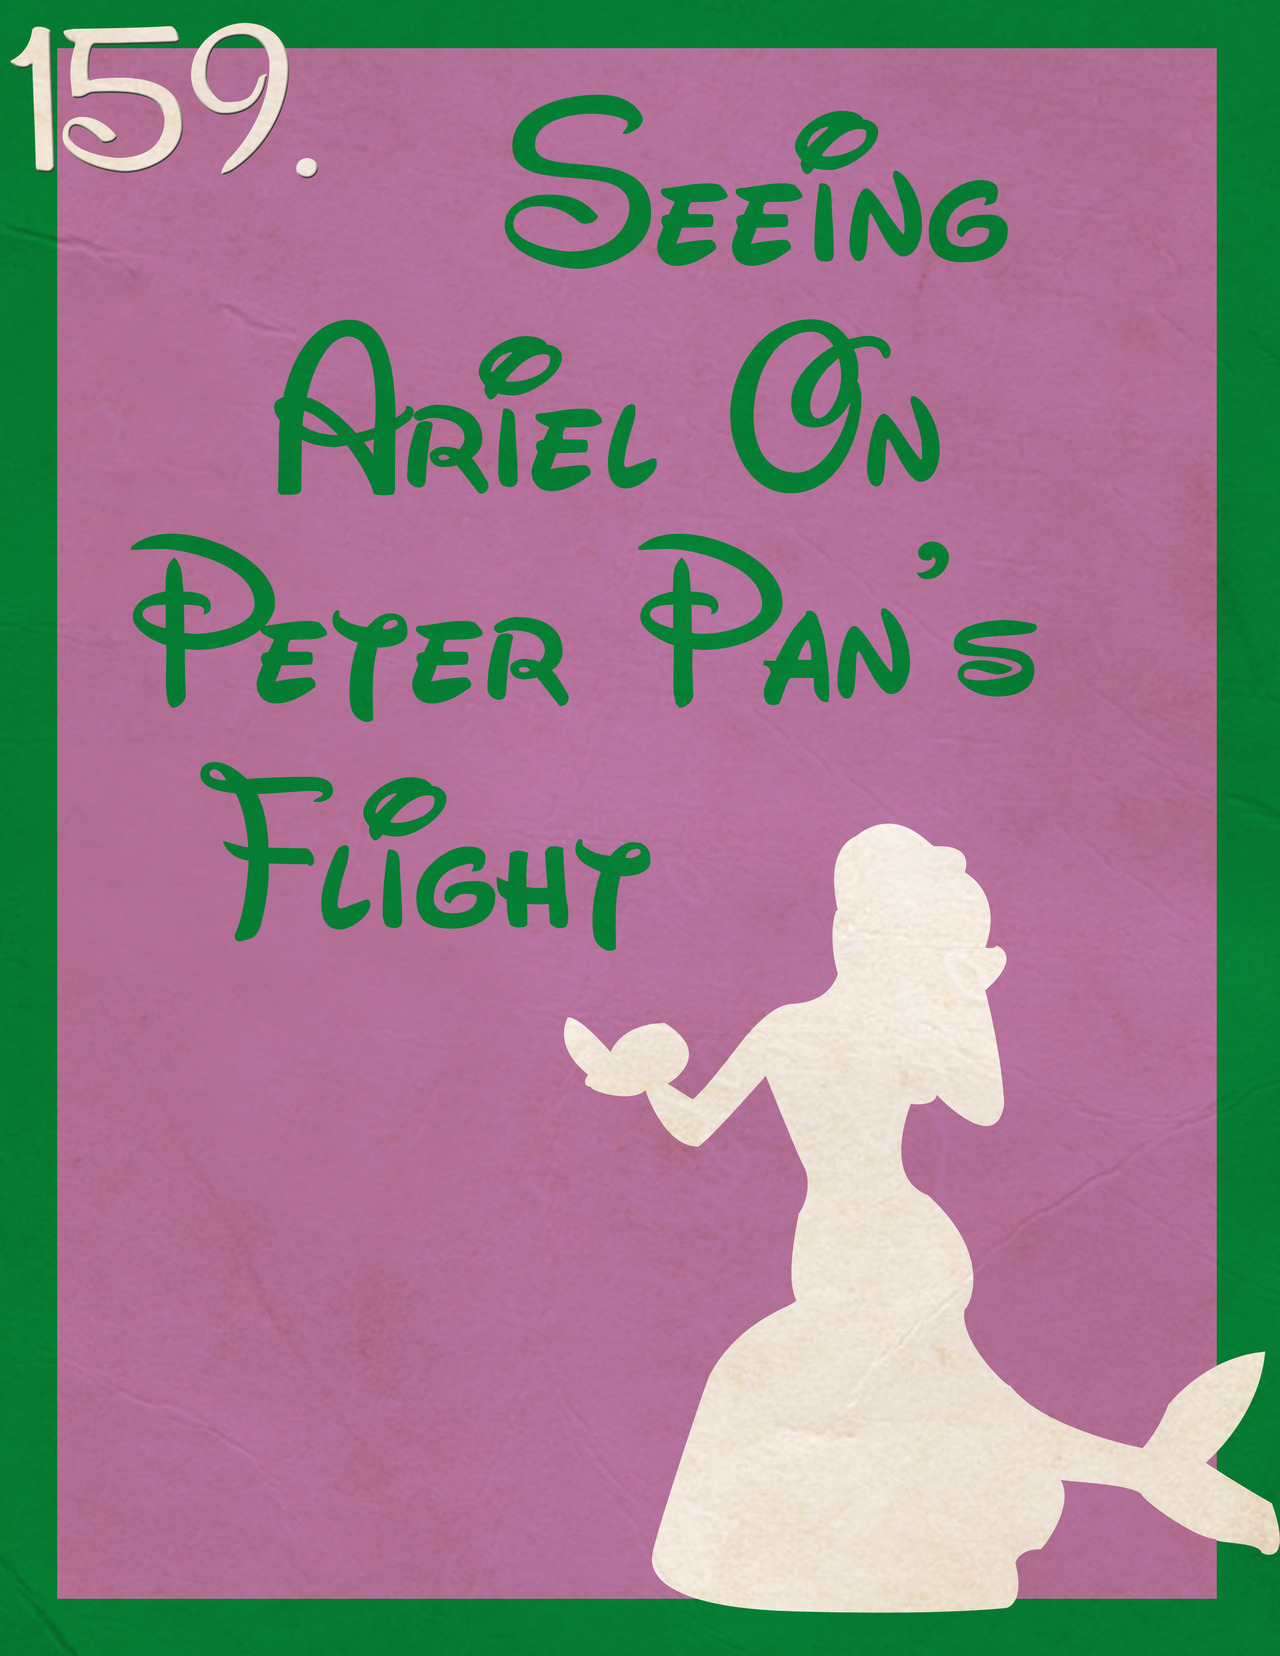 159: Seeing Ariel on Peter Pan's Flight